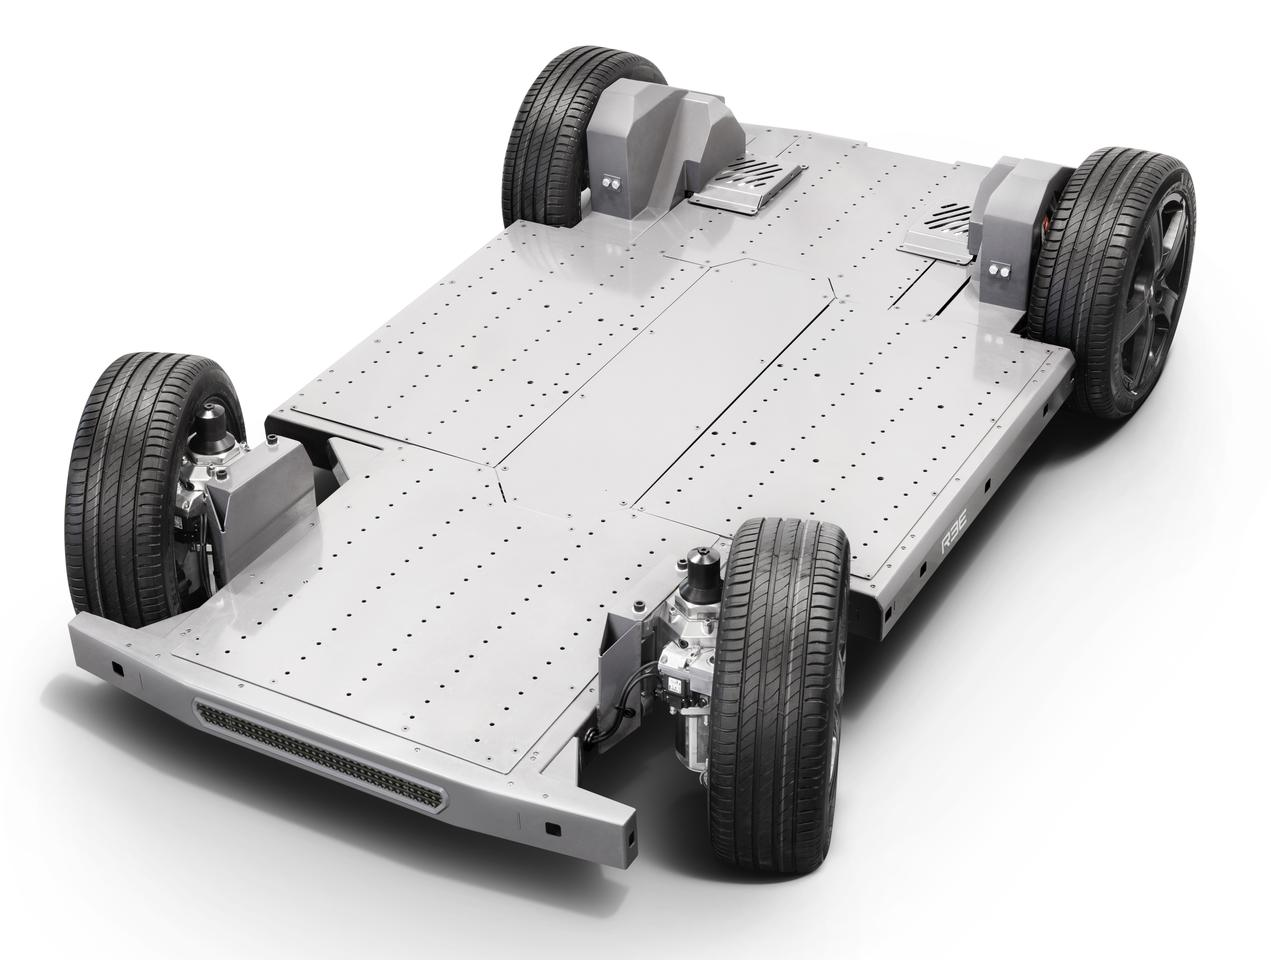 The entire base of the remarkable REE chassis is the battery, and the compact, removable corner modules contain the entire drivetrain, including the wheels, motors, brakes, steering, suspension and more